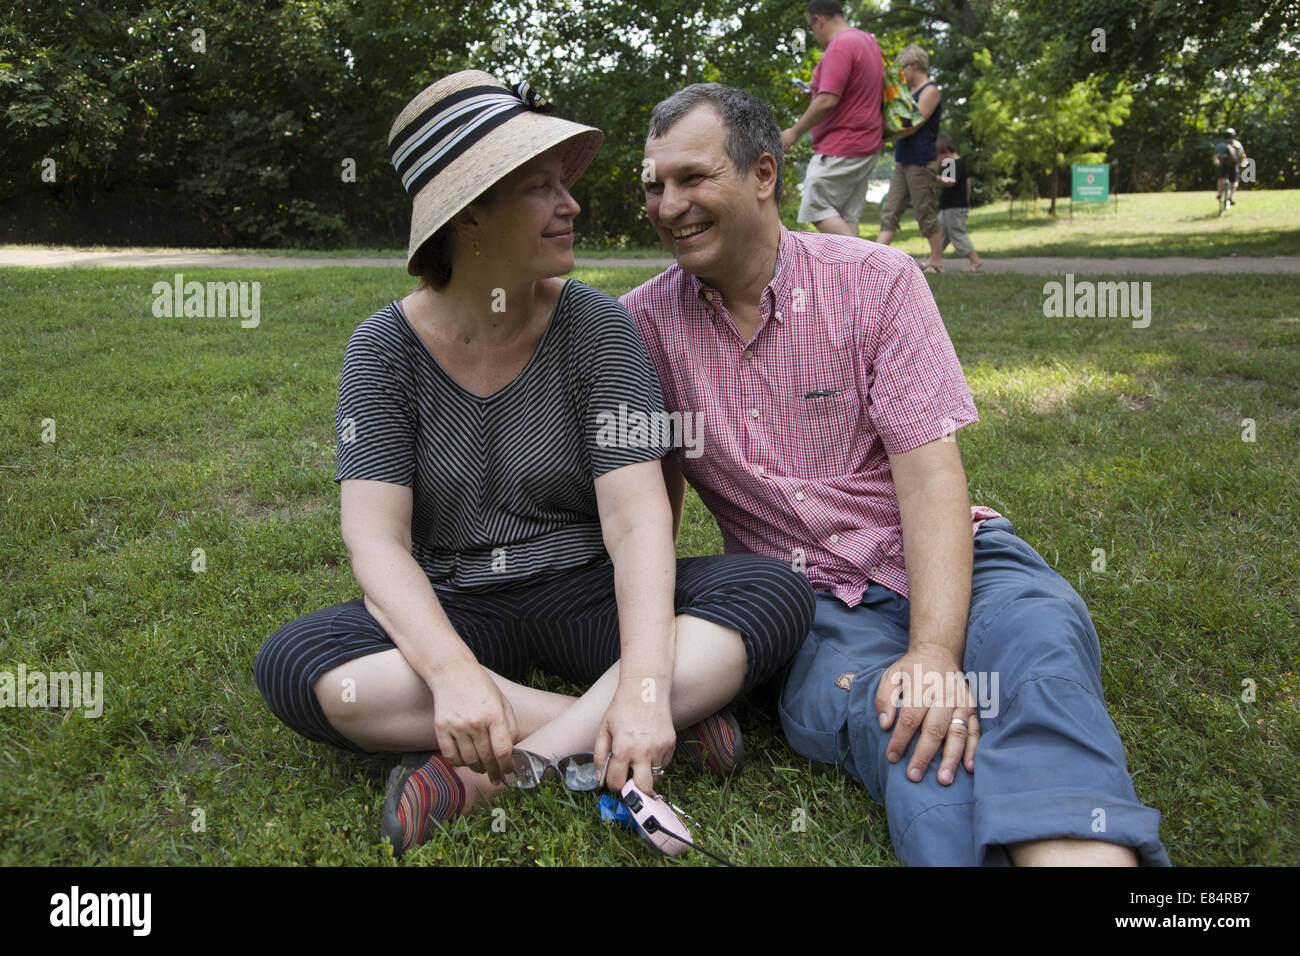 couple in their mid 40's relax in Prospect Park, Brooklyn, NY. - Stock Image